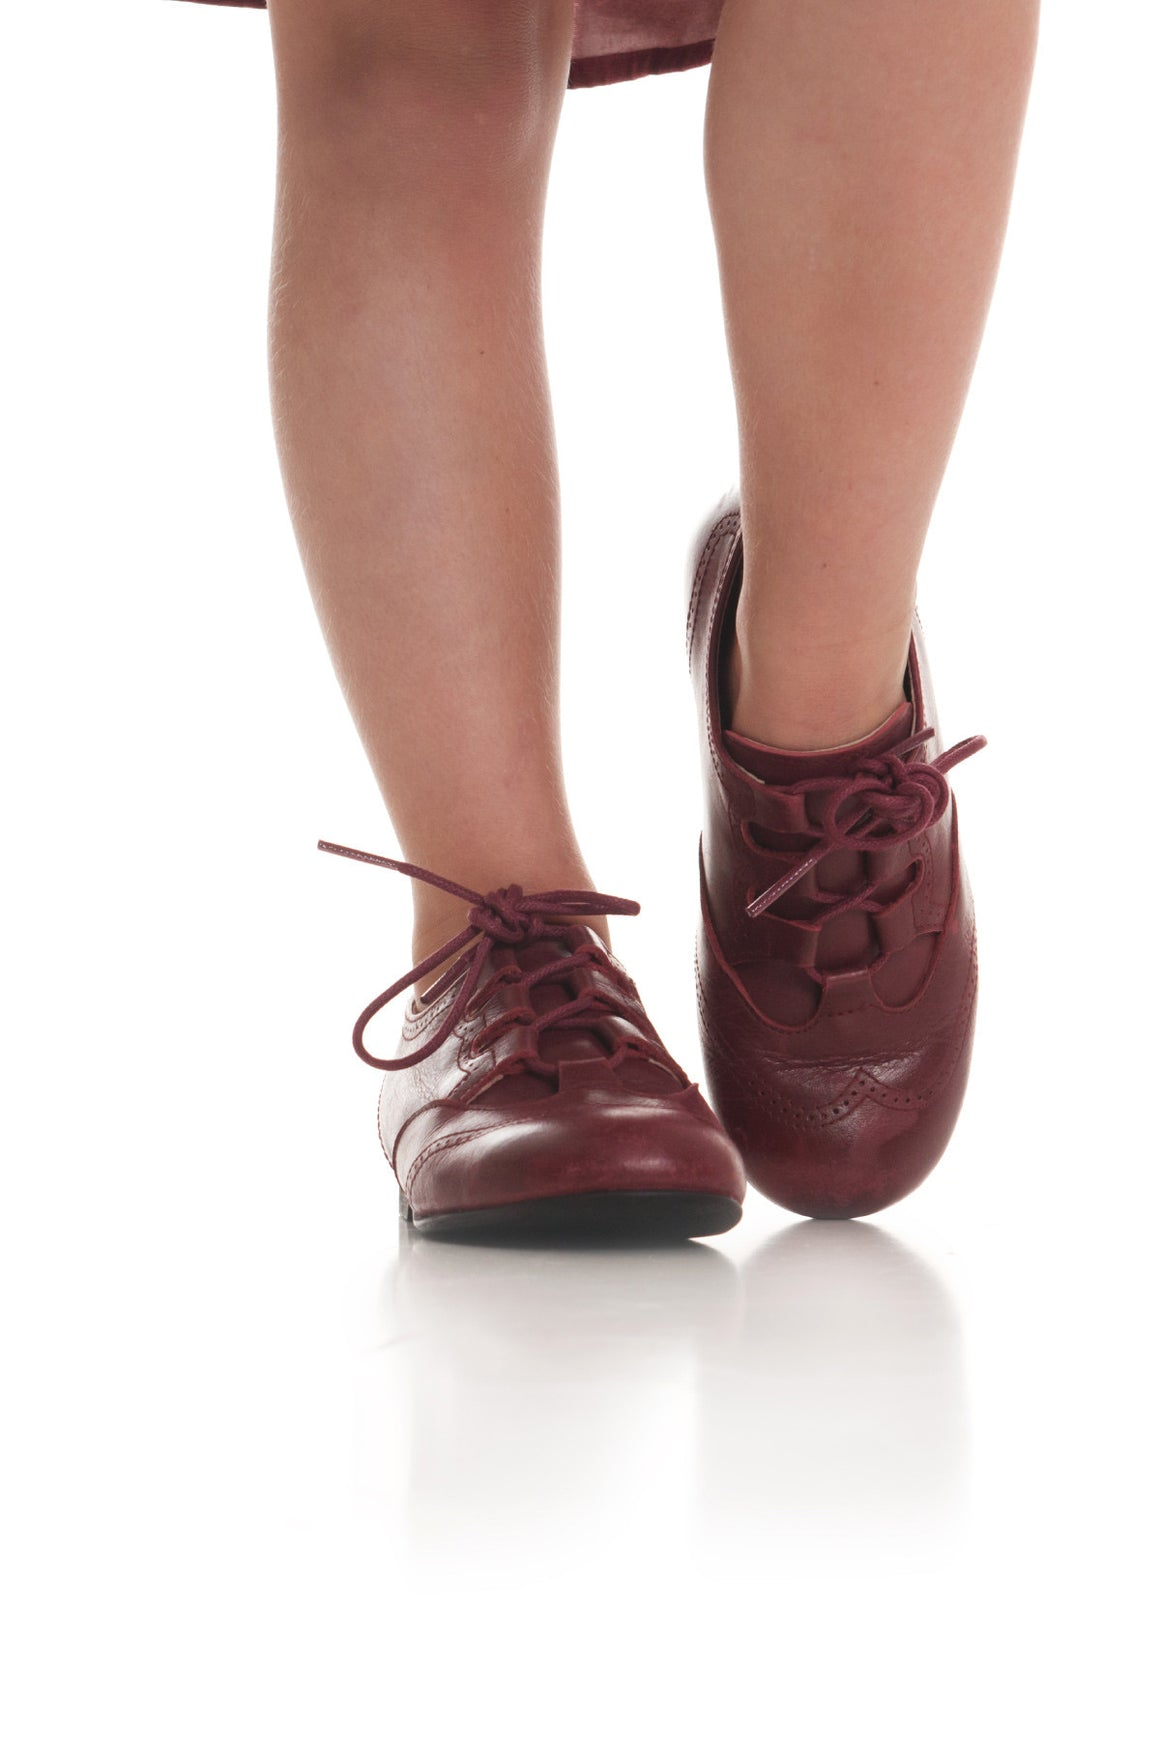 Belfore Shoe- Burgandy Samples